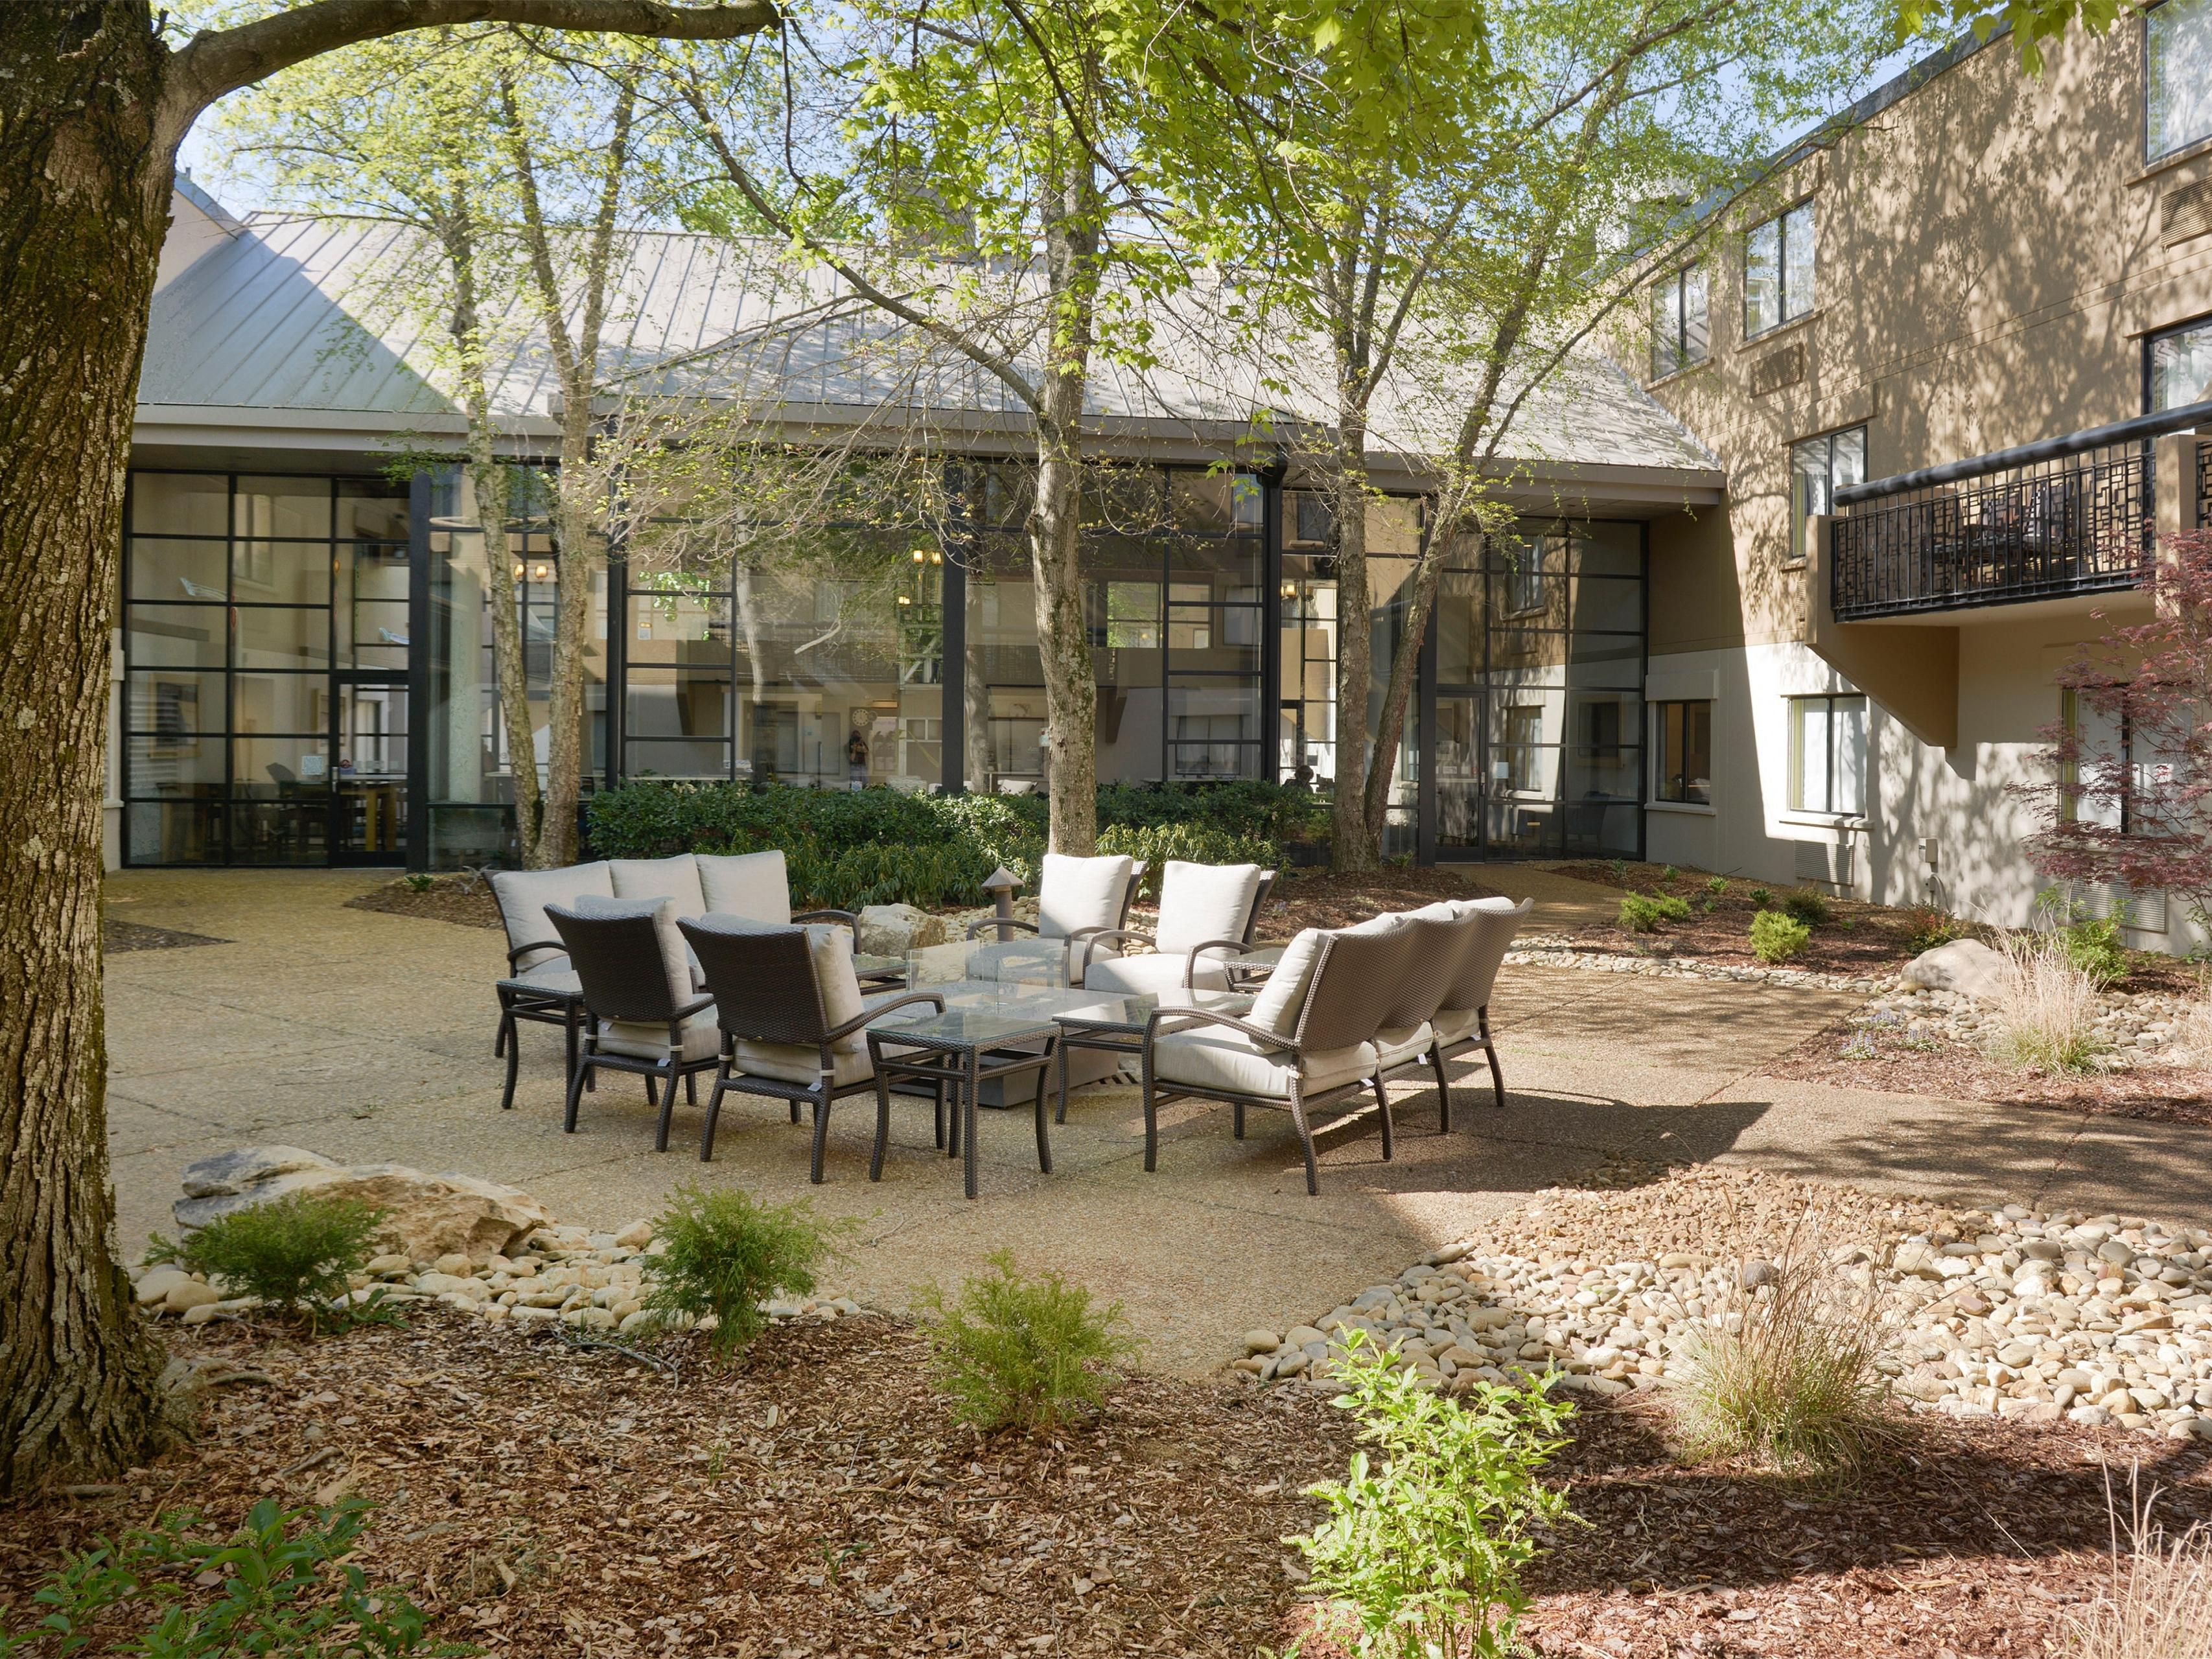 Newly Landscaped Courtyard with Fire Pit